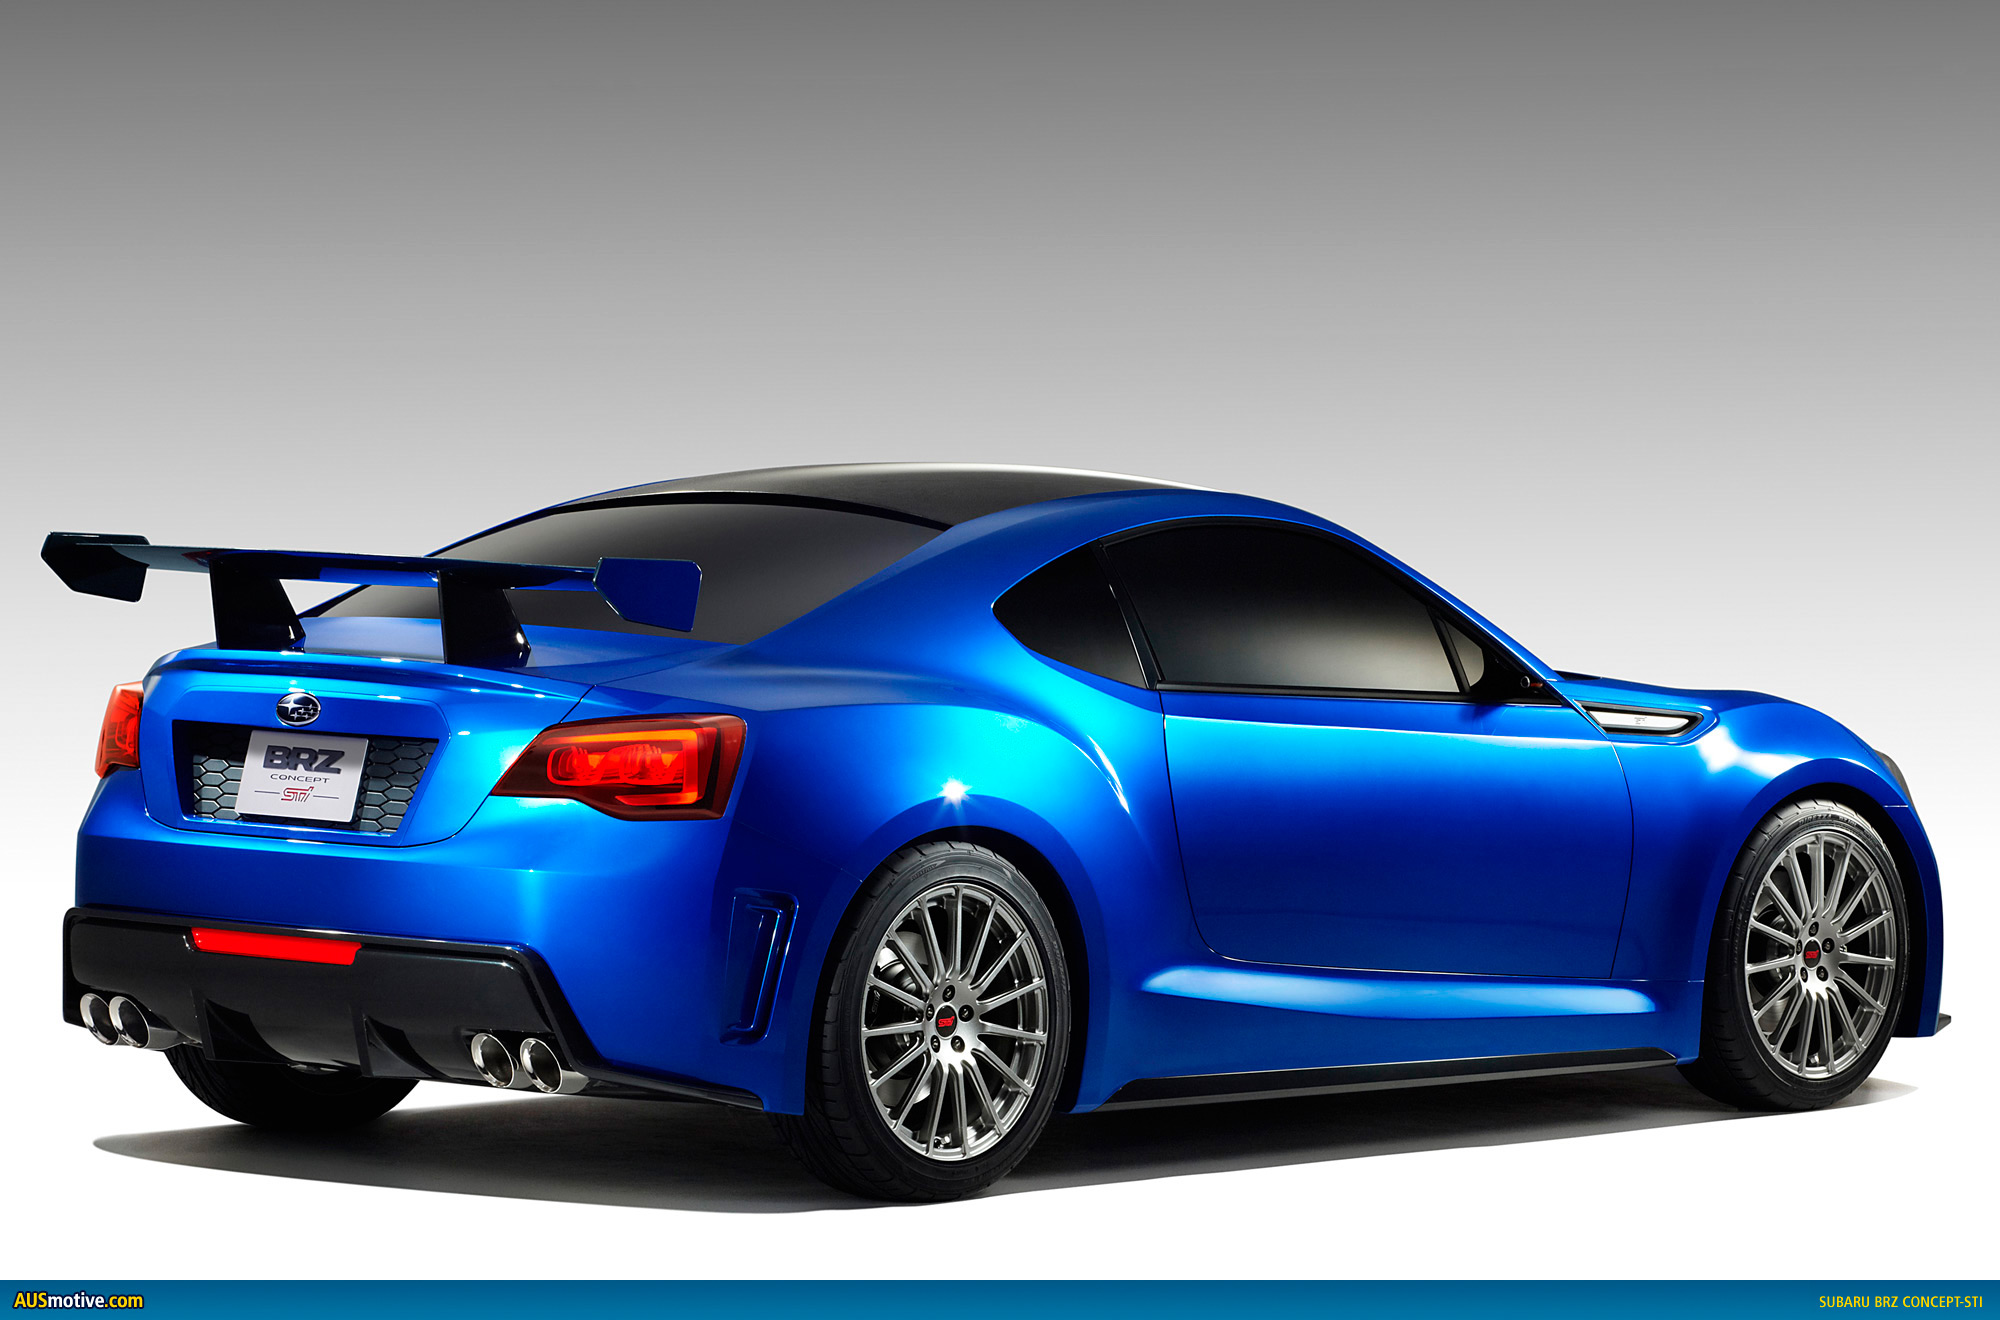 Okay fine The Scion FR S and Subaru BRZ Are Mediocre